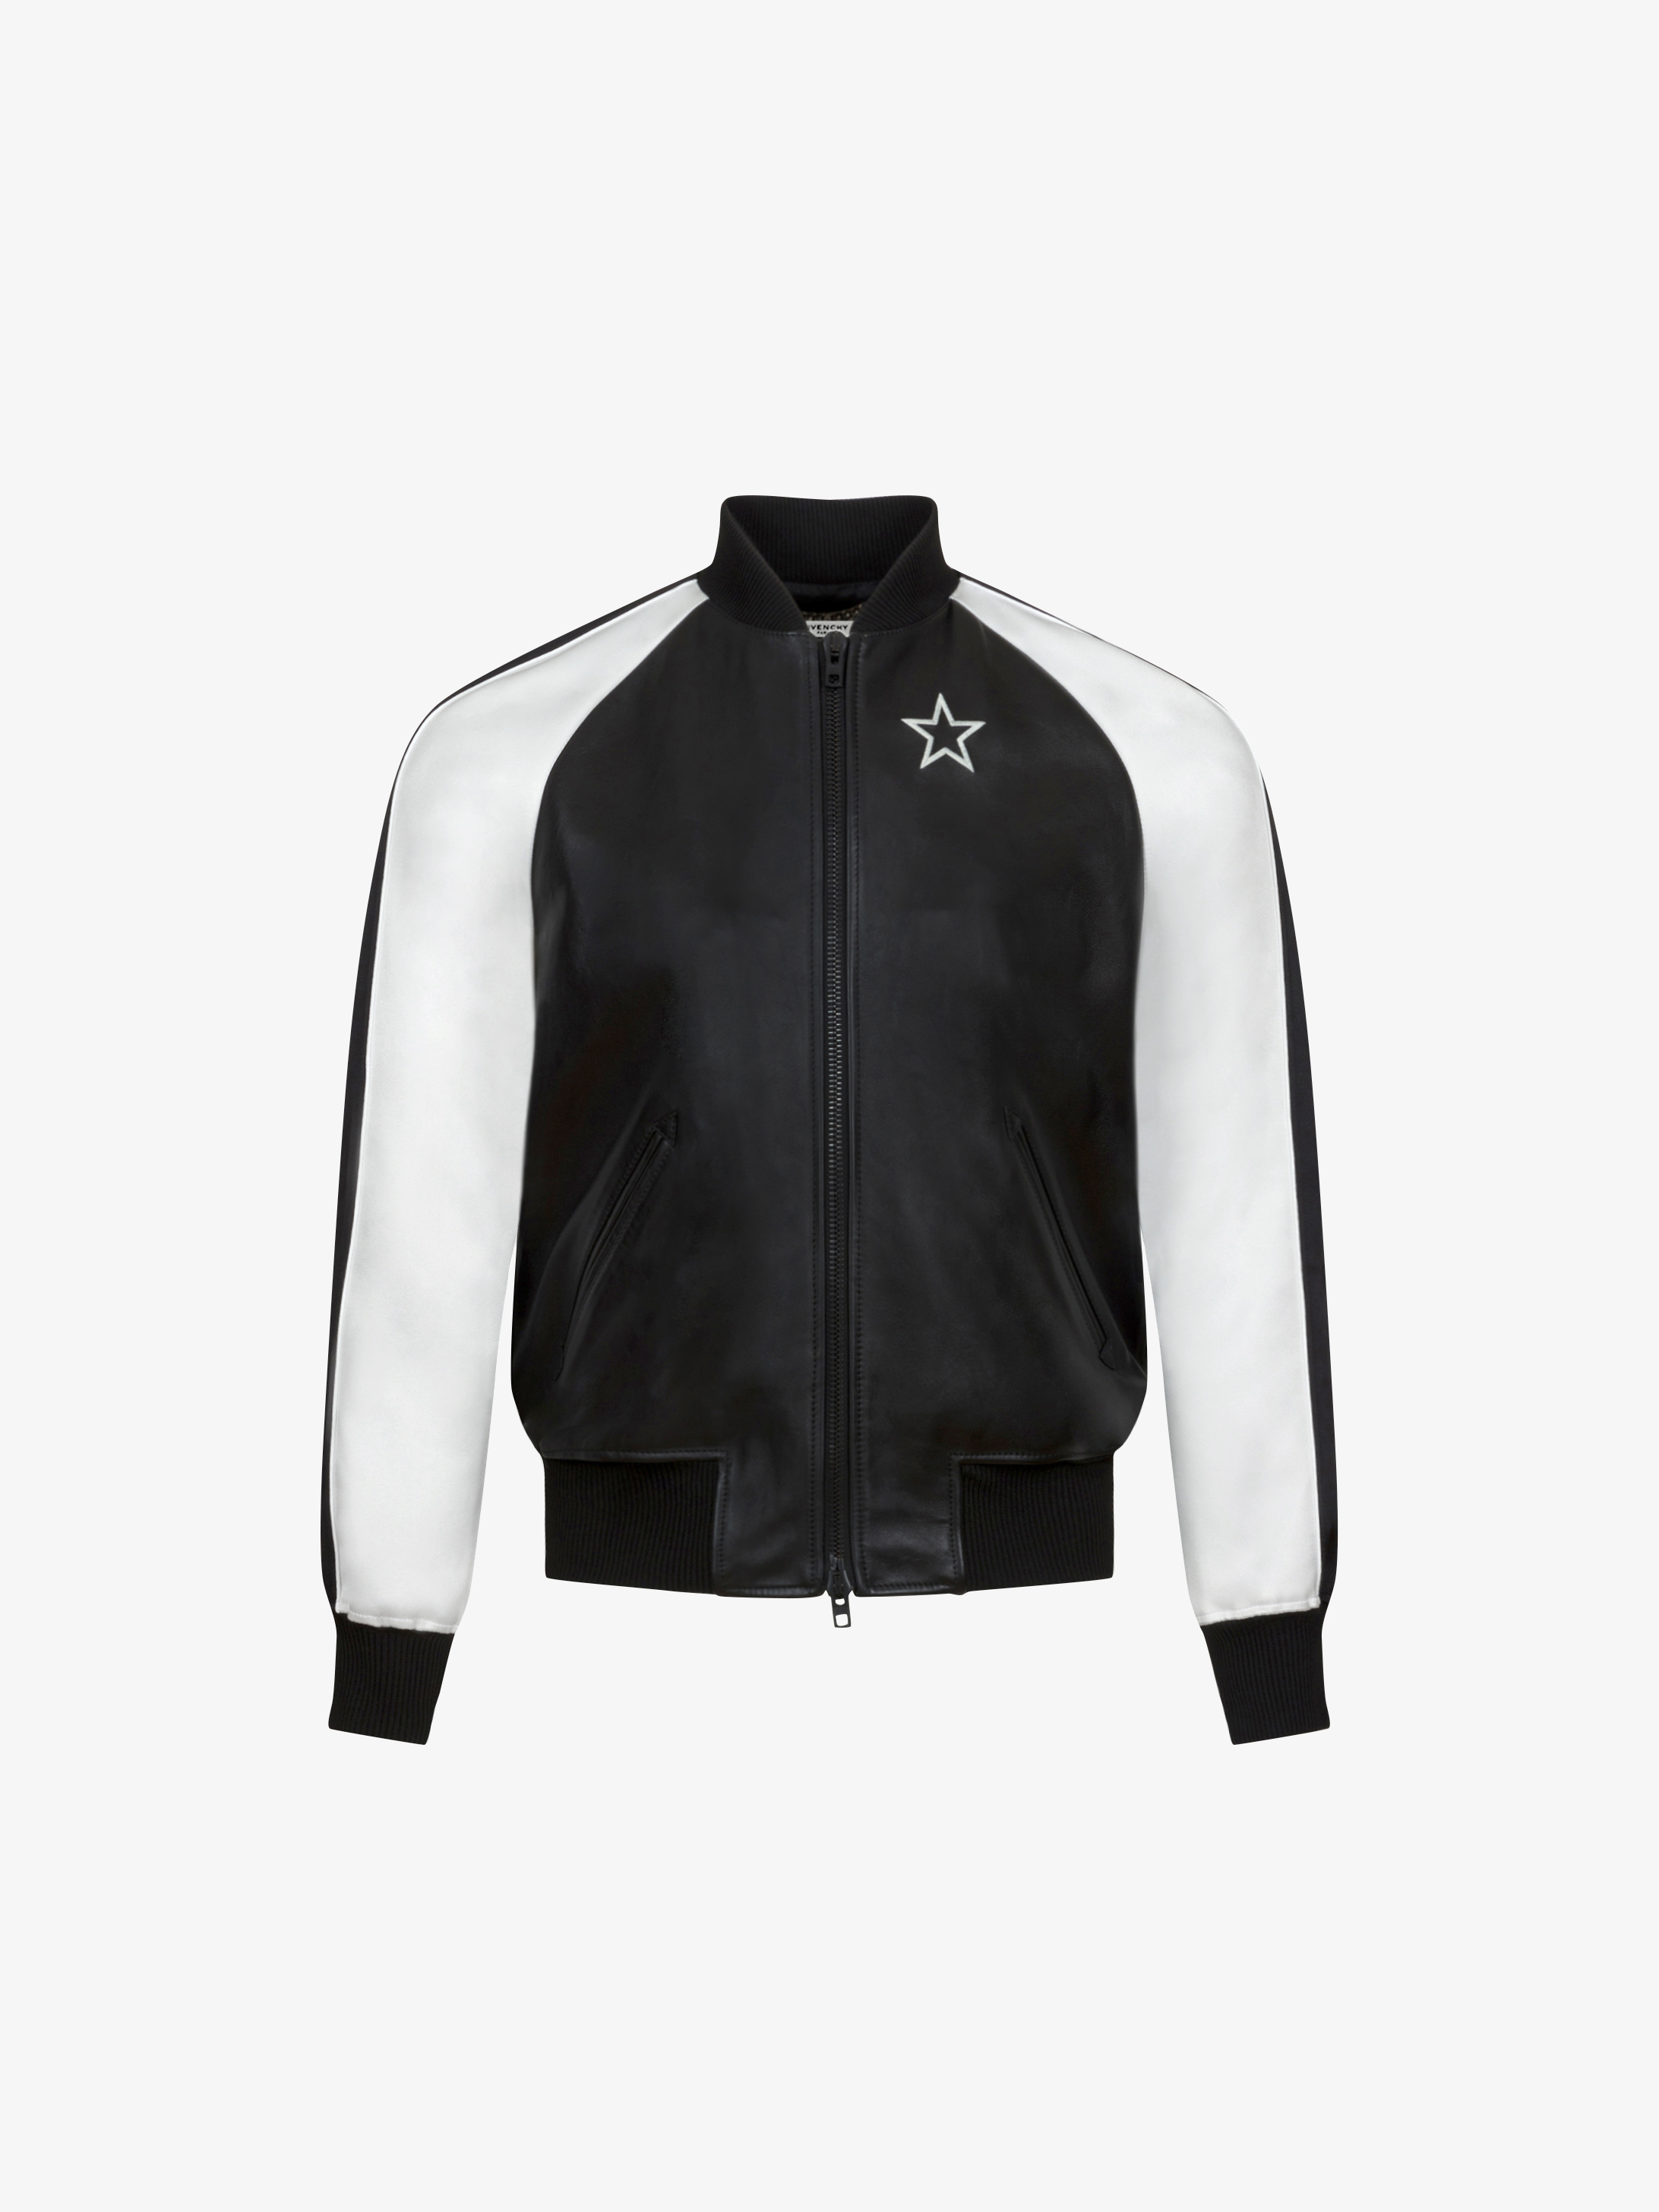 Star bomber jacket in leather